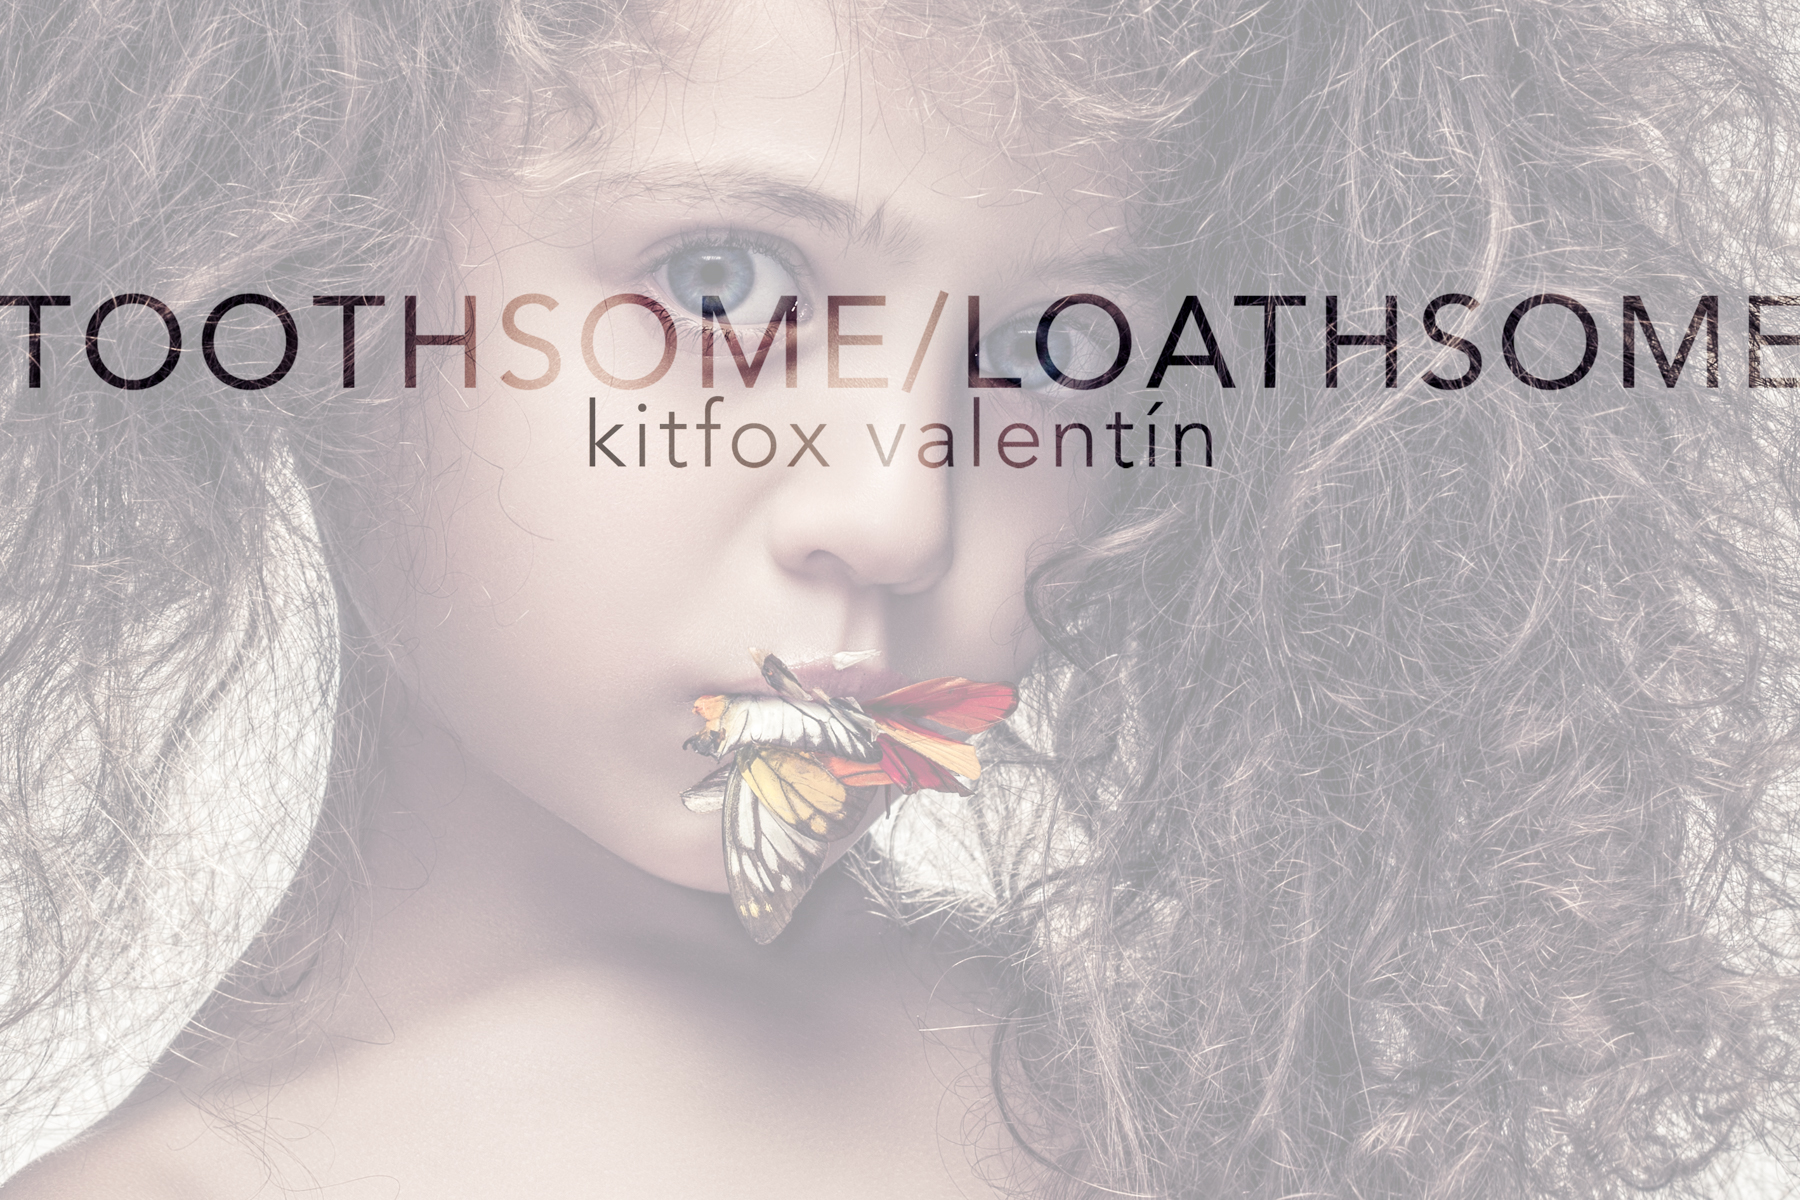 TOOTHSOME/LOATHSOME cover by Kitfox Valentin